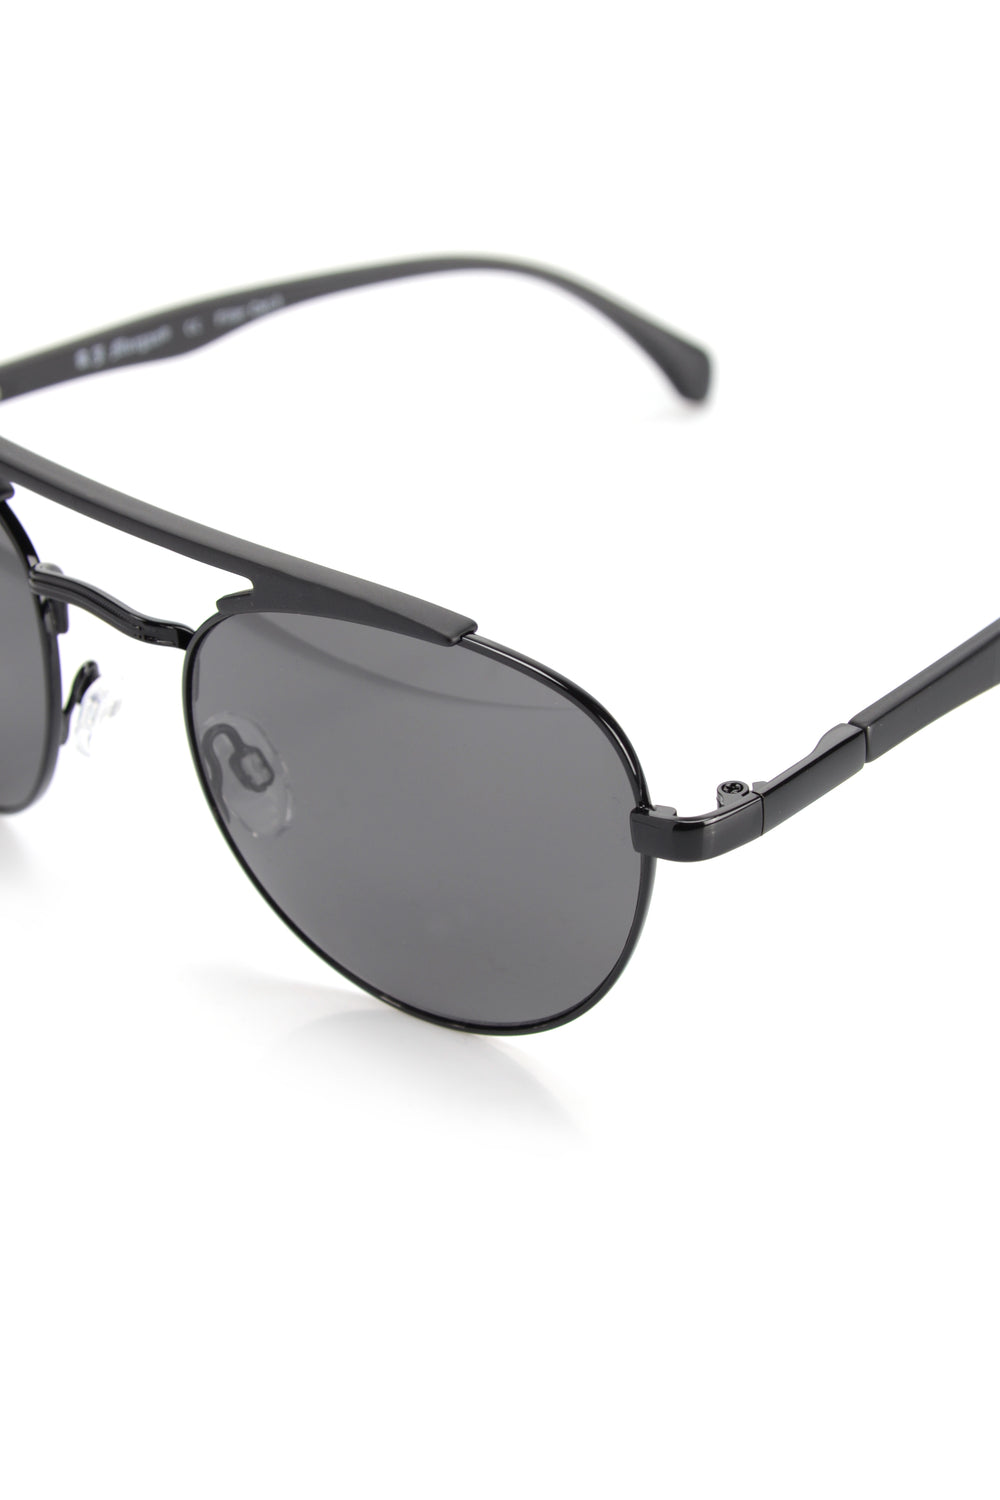 Fifth Avenue Sunglasses - Black